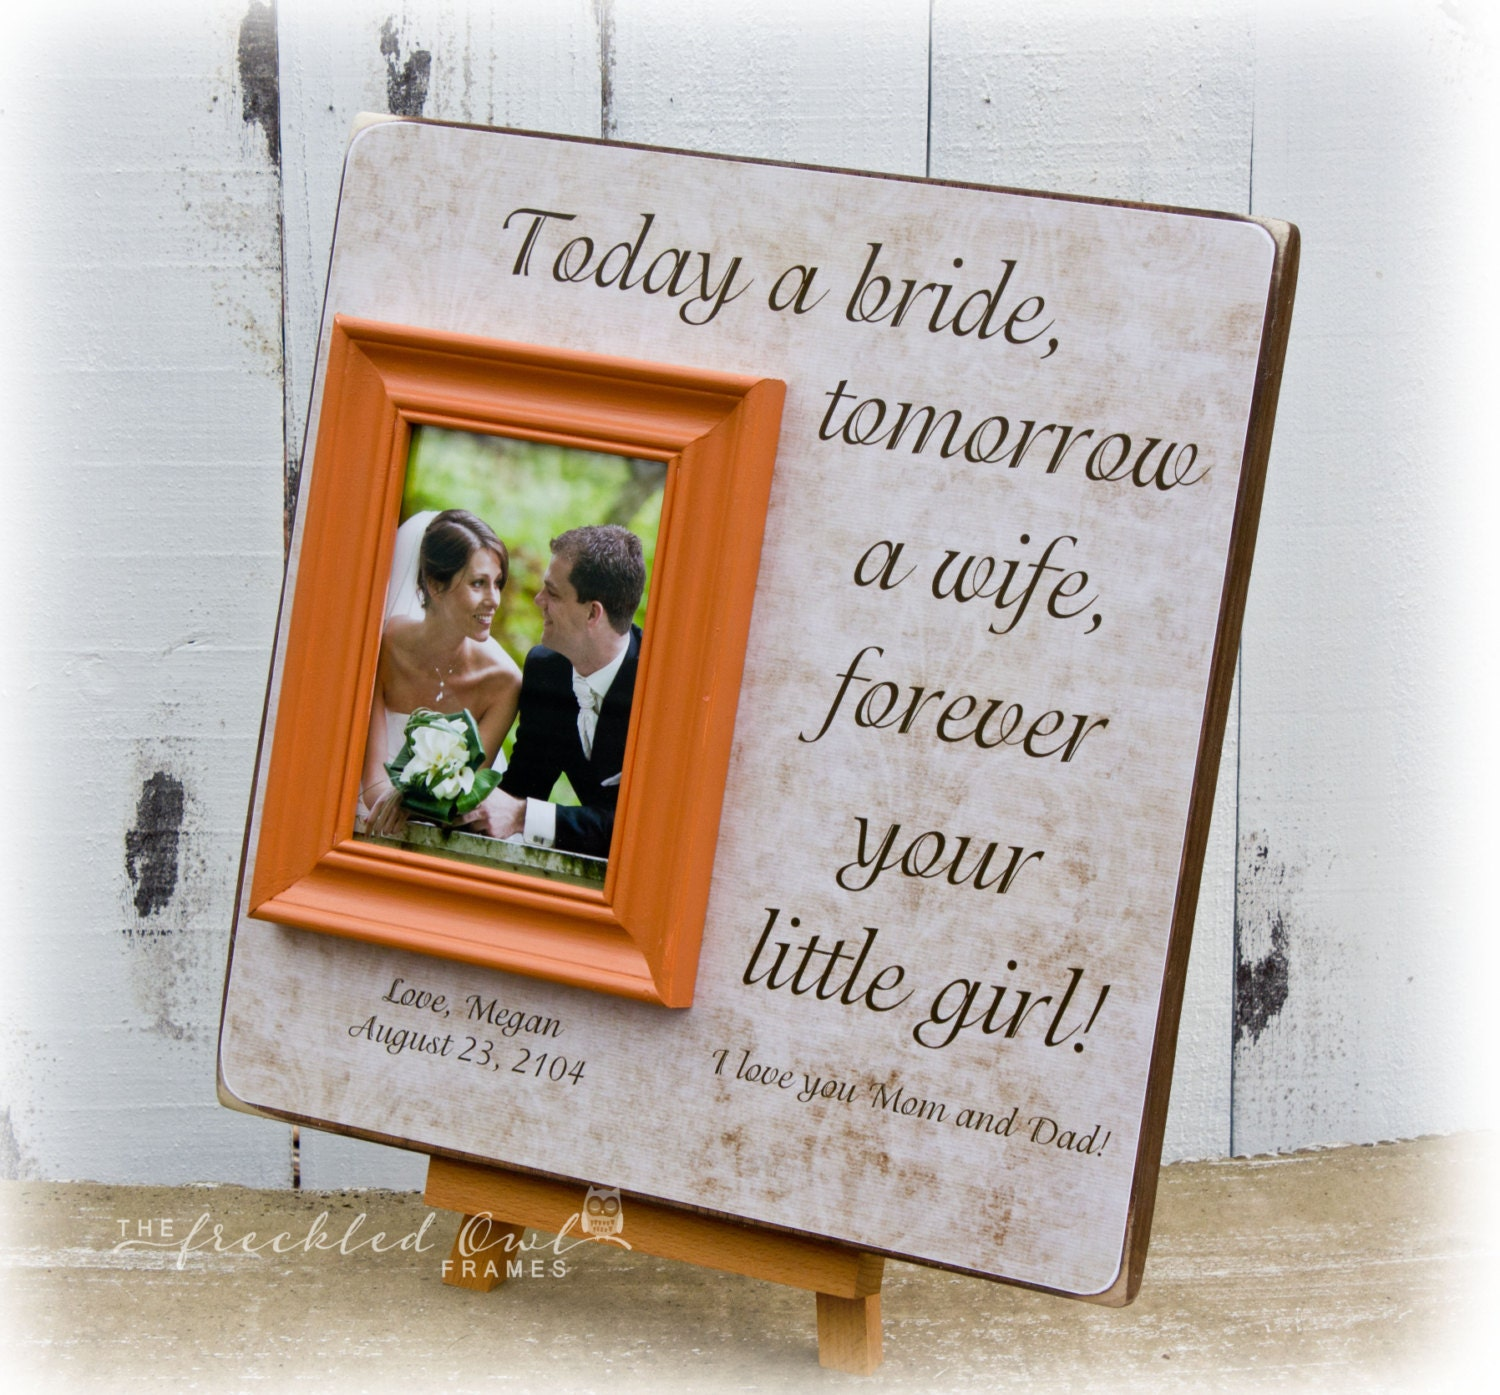 Personalized Wedding Picture Frames For Parents : Wedding Gift for Parents Personalized Picture Frame Thank